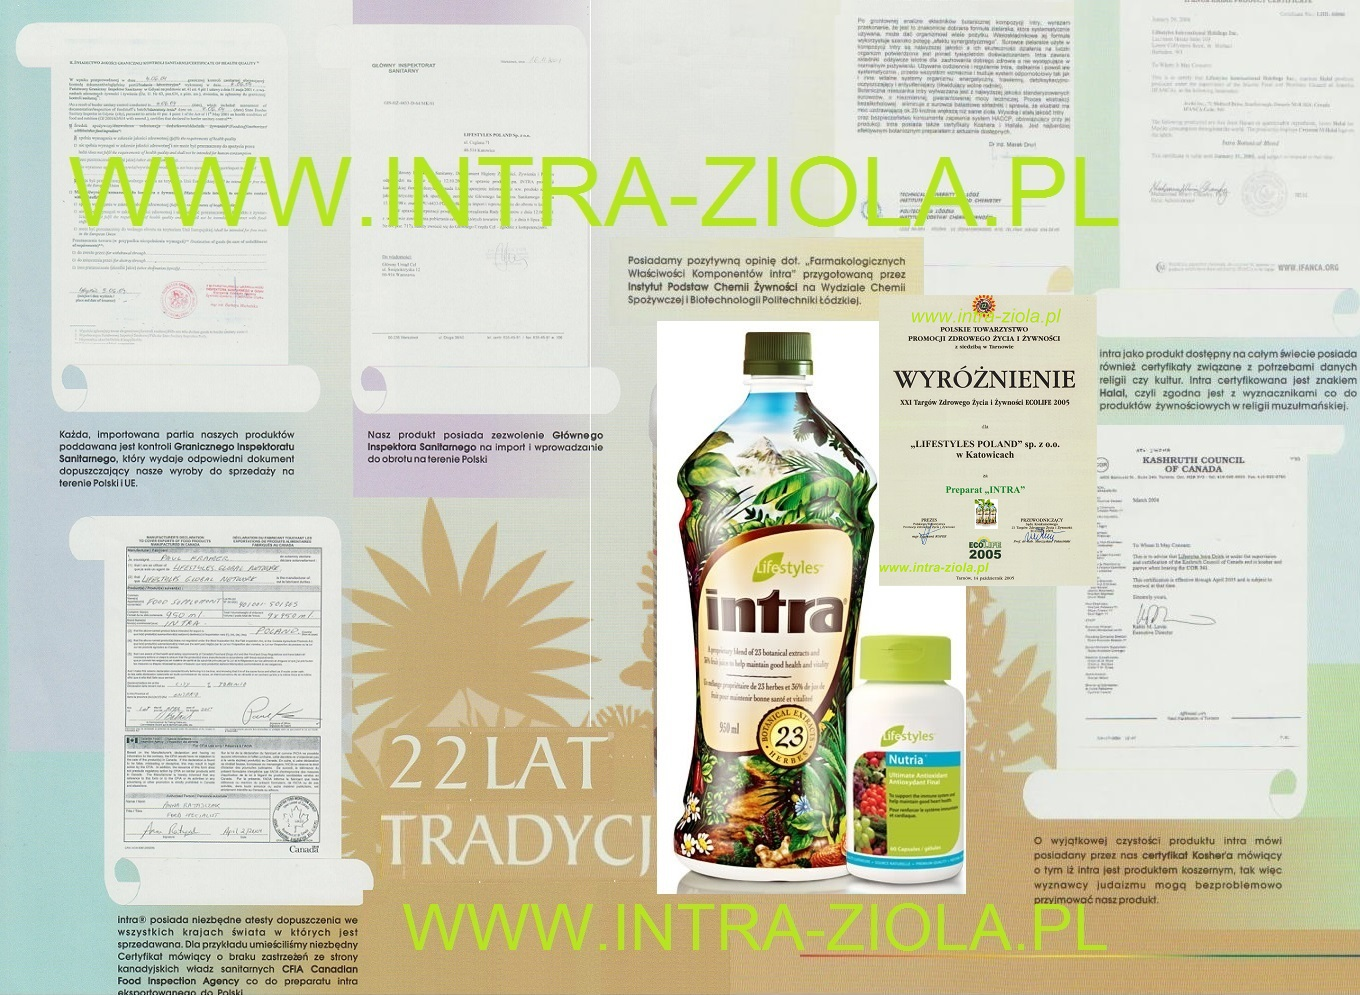 Intra 23 botanical extracts that provide the body with antioxidants, flavonoids, lignins, polysaccharides and other health enhancing nutrients specific to each herbal extract.